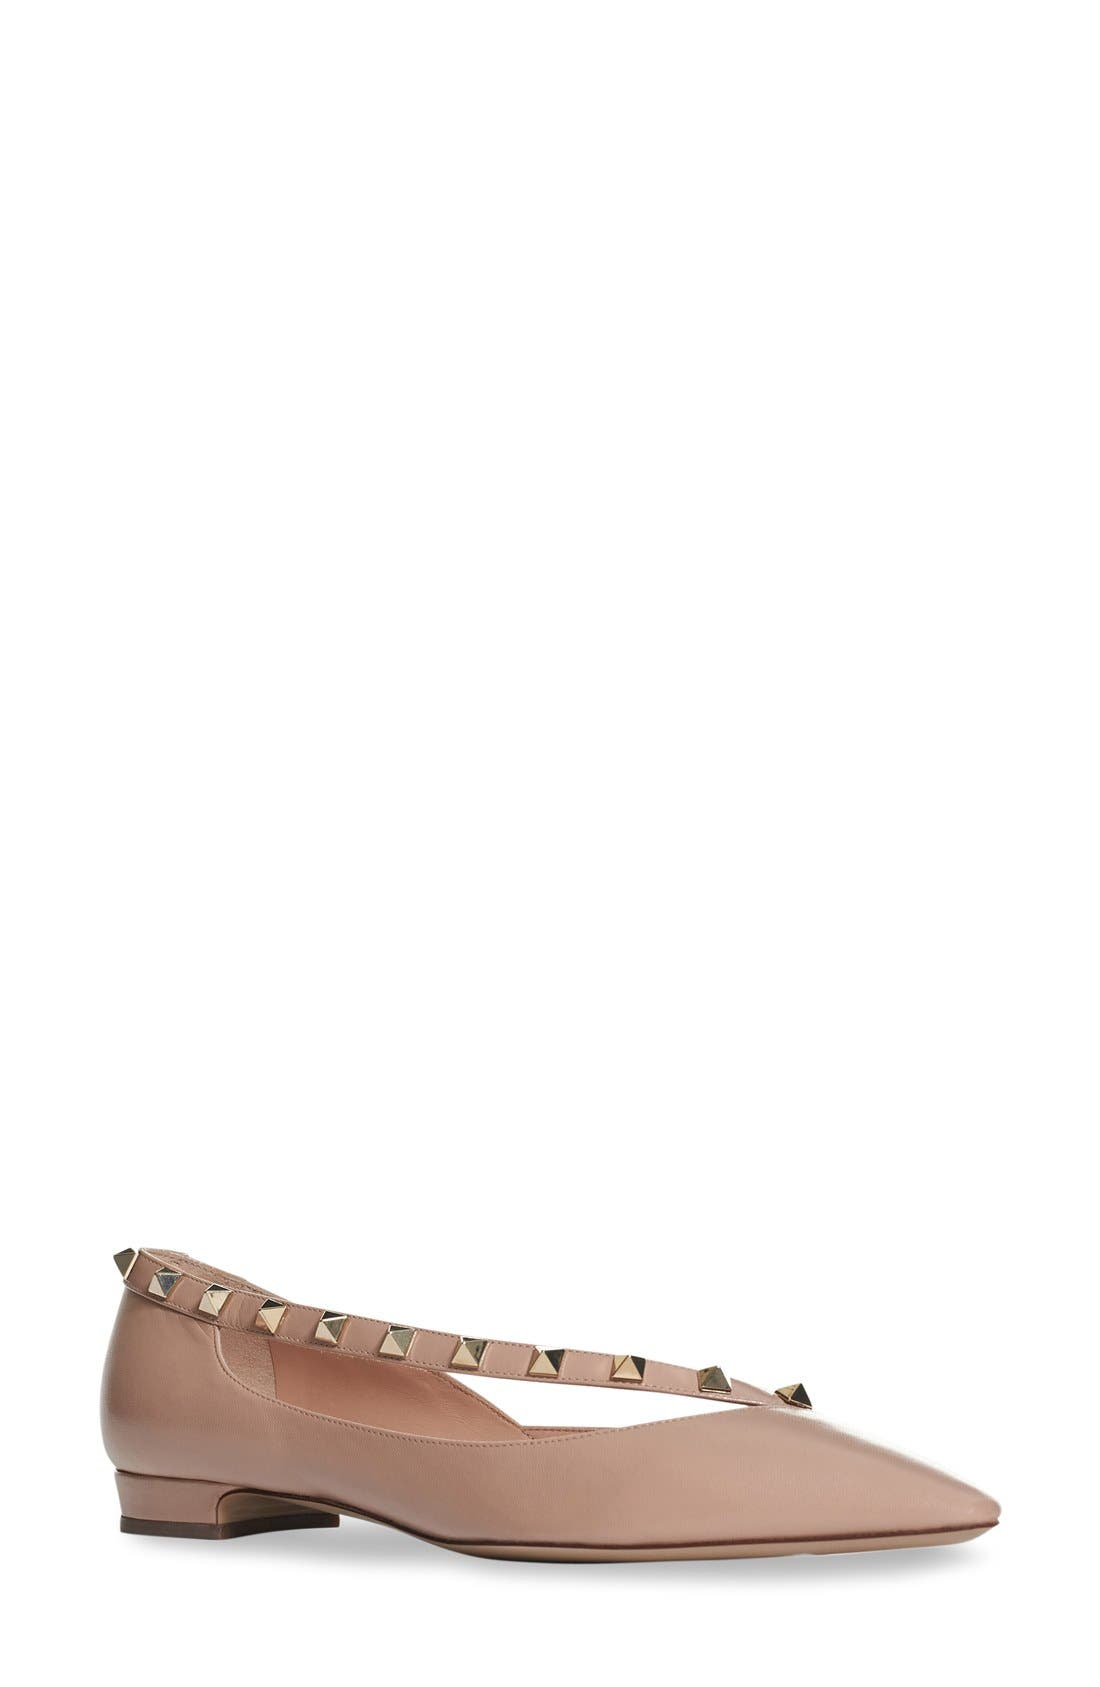 'Rockstud' Demi d'Orsay Flat,                             Main thumbnail 1, color,                             250